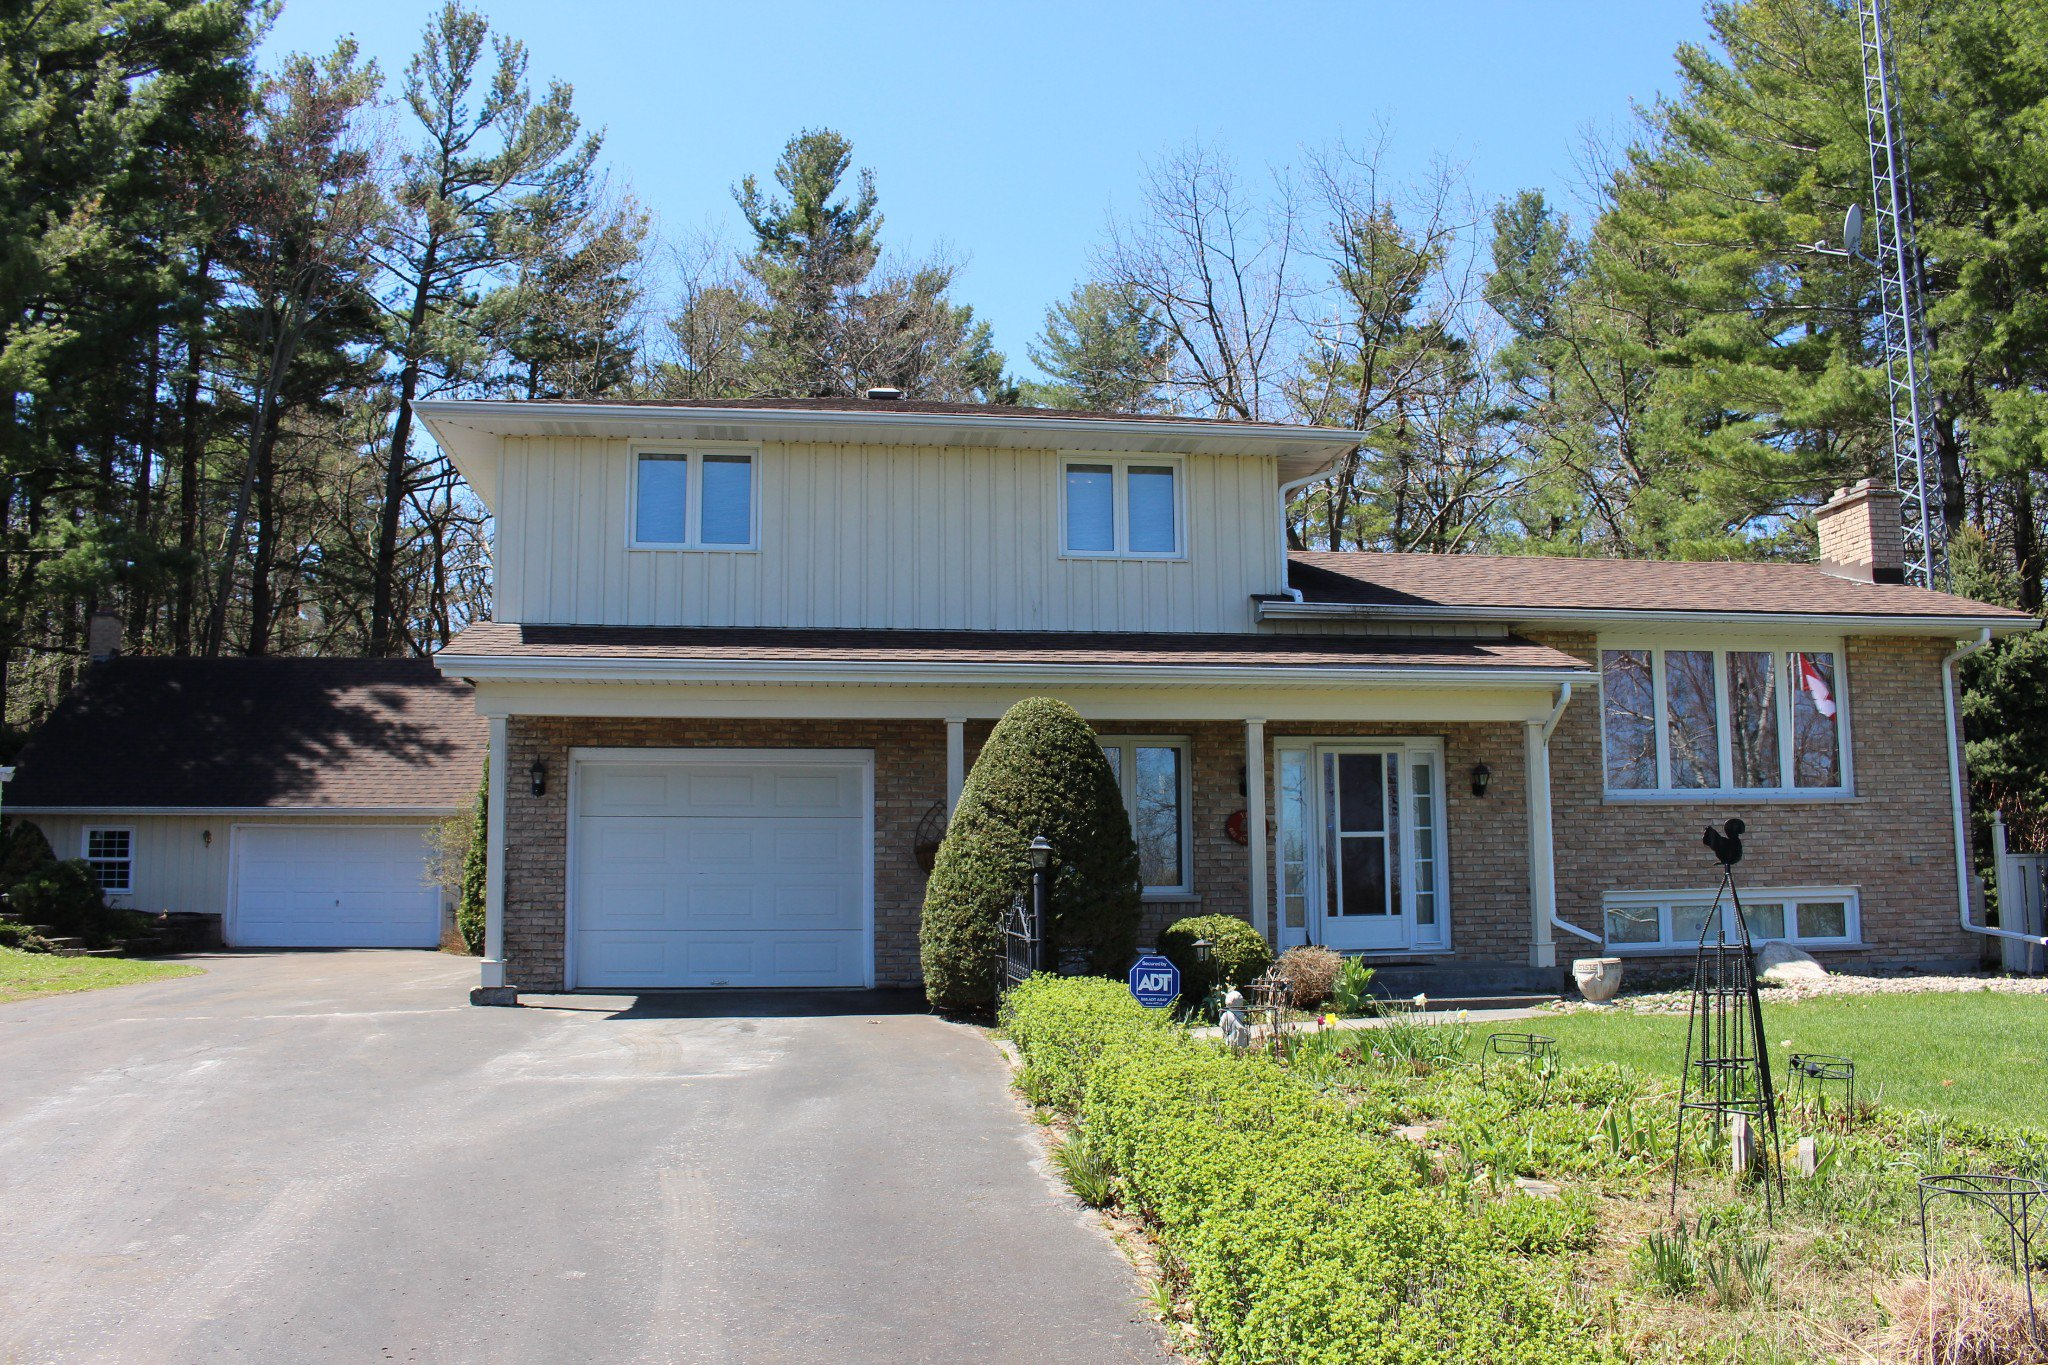 Photo 1: Photos: 5144 Oak Hills Road in Bewdley: Residential Detached for sale : MLS®# 125303